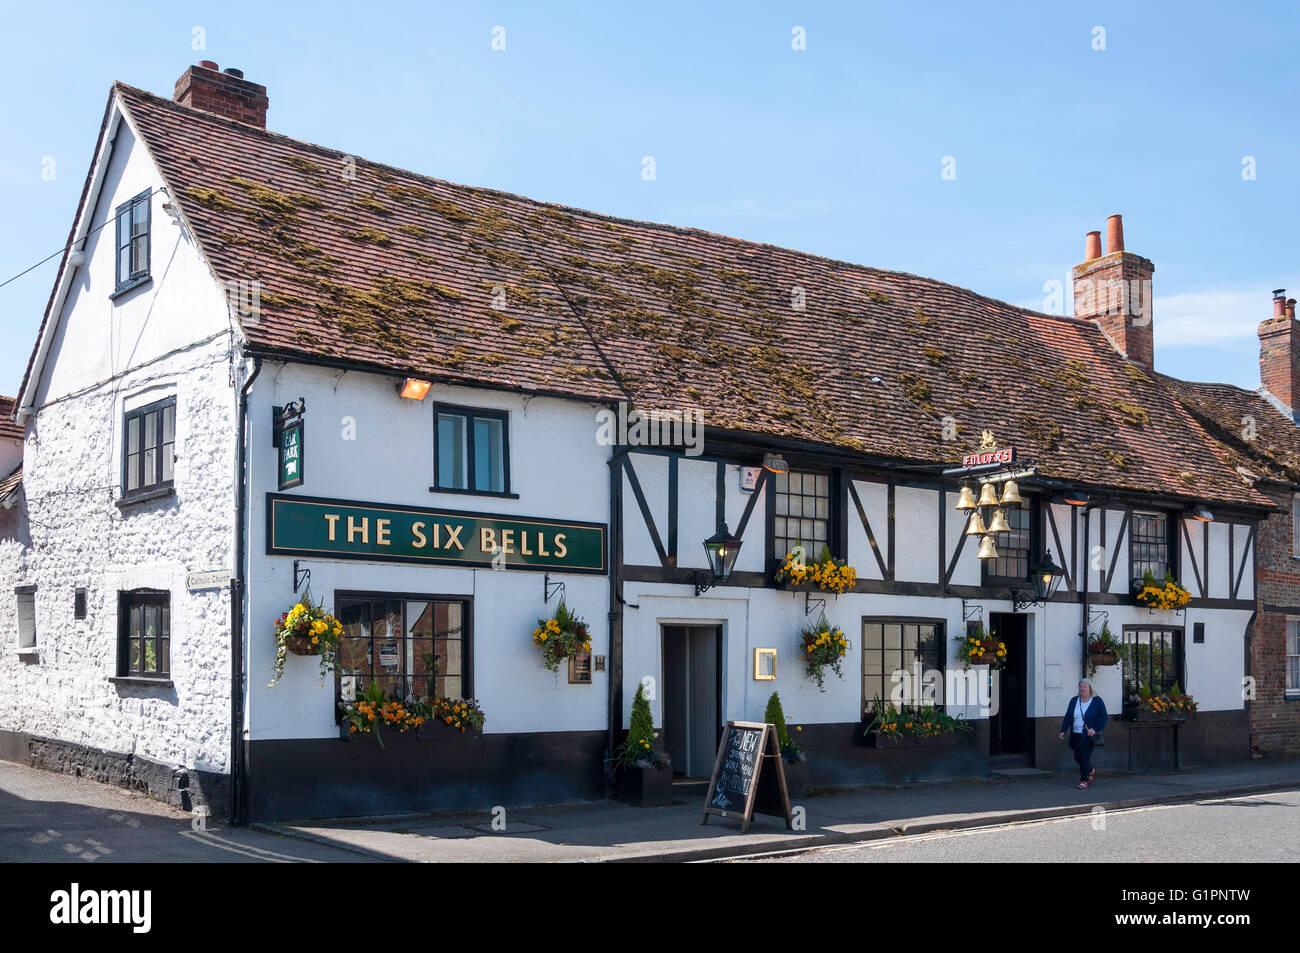 16th century 'The Six Bells 'pub, High Street, Thame, Oxfordshire, England, United Kingdom - Stock Image